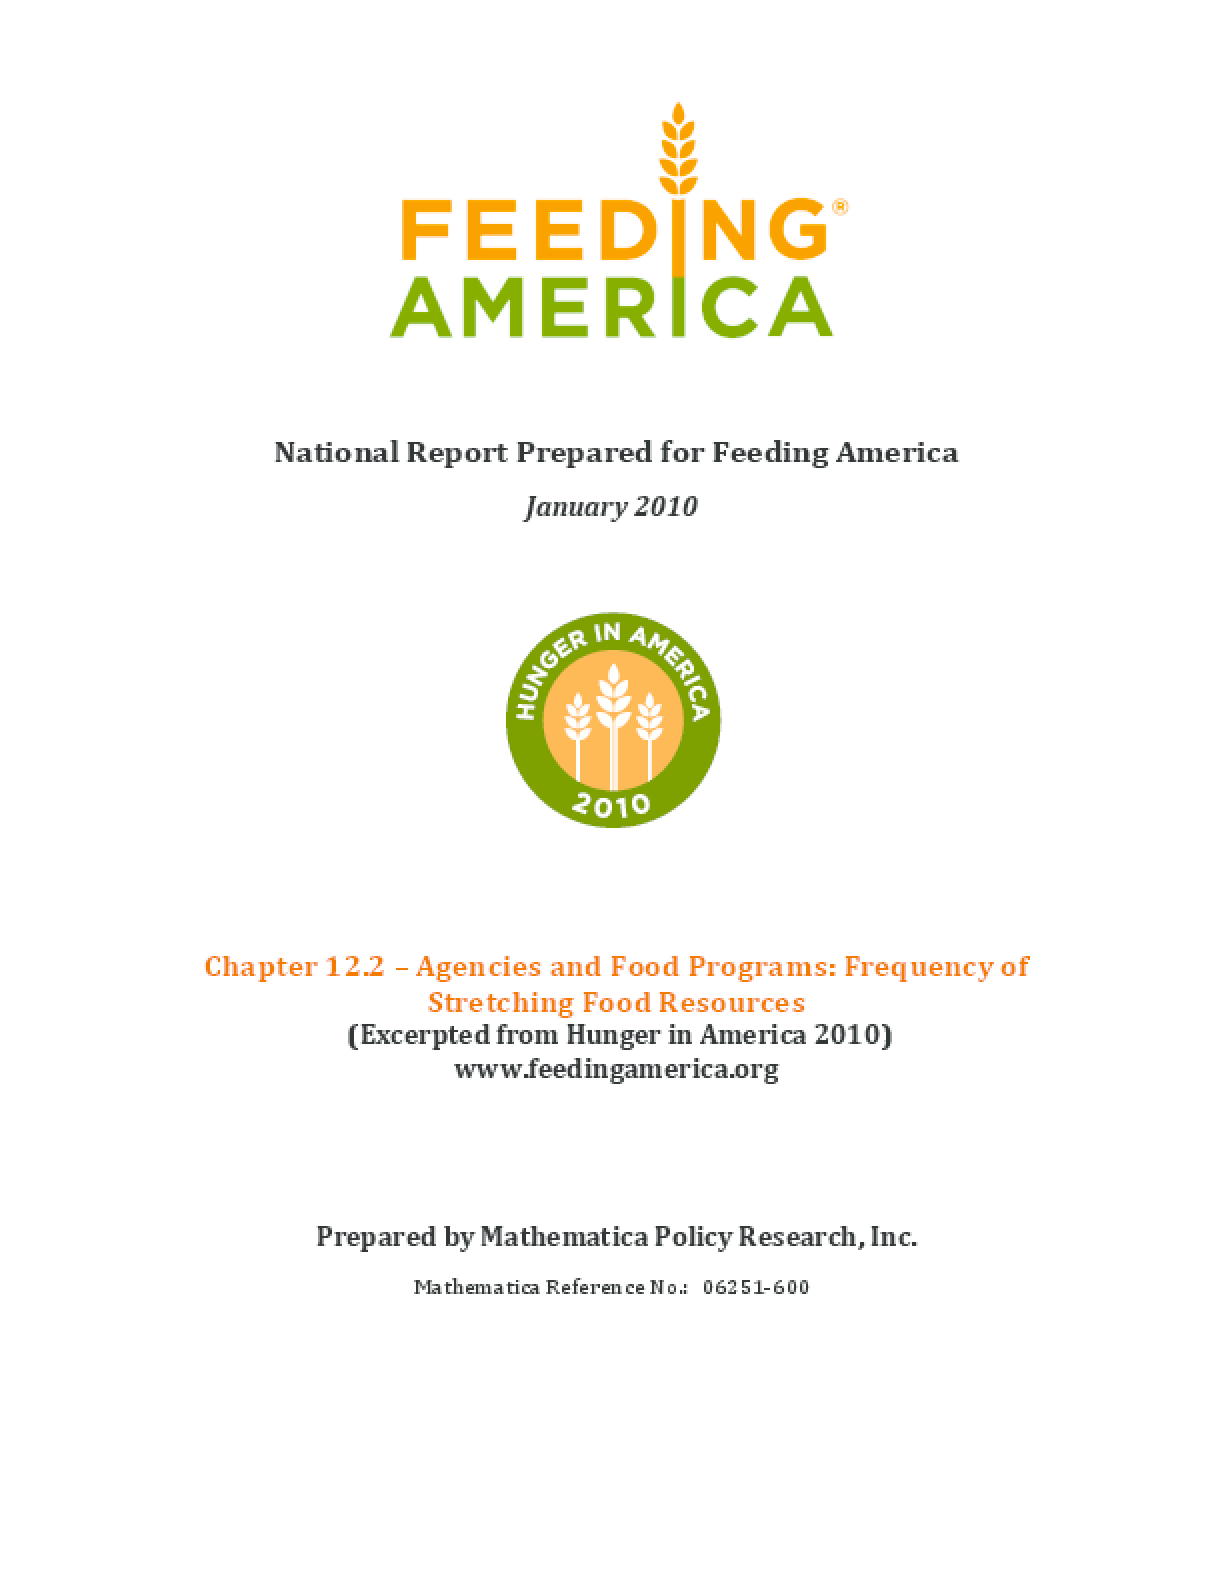 Feeding America Agencies and Food Programs: Frequency of Stretching Food Resources